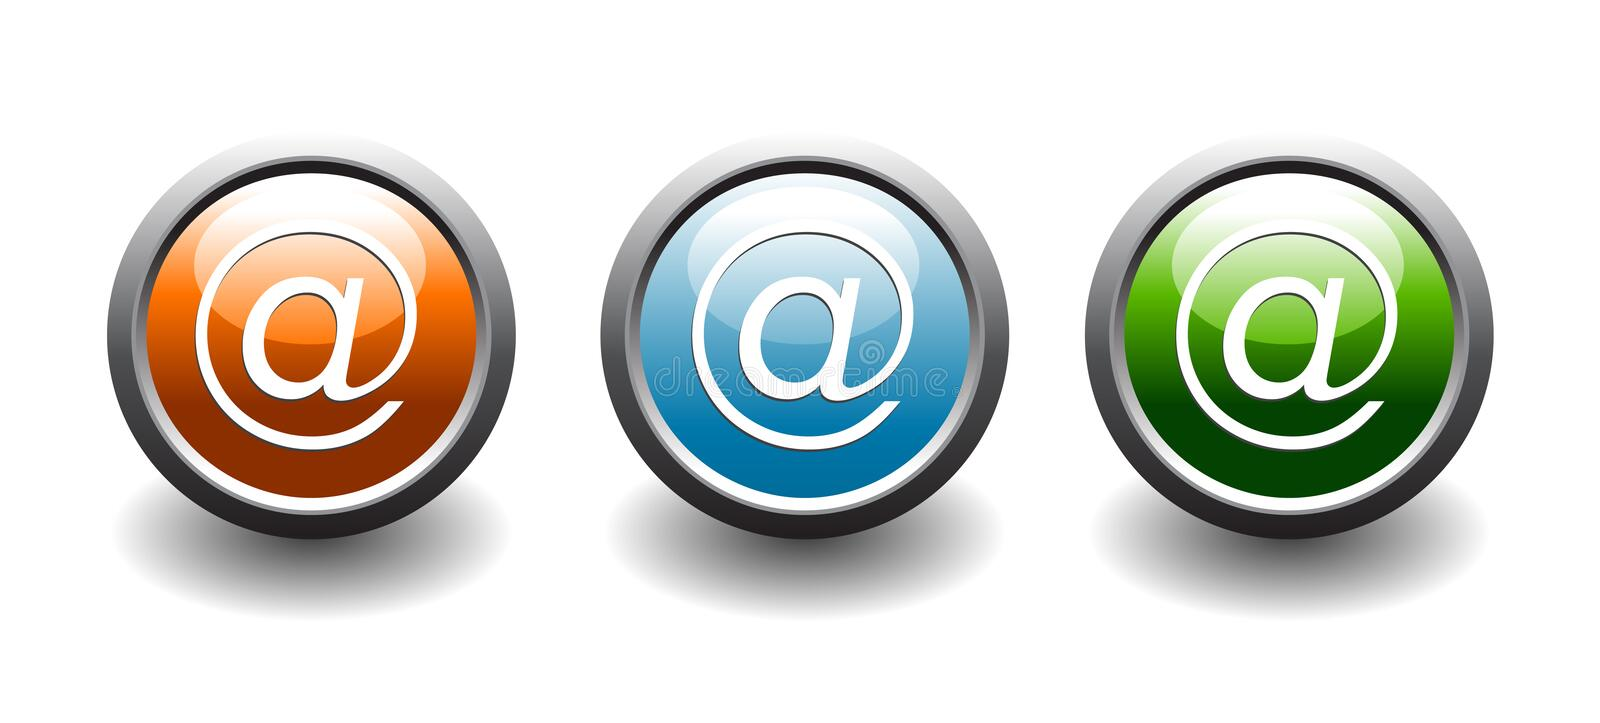 Web address button icons. In 3 color options vector illustration